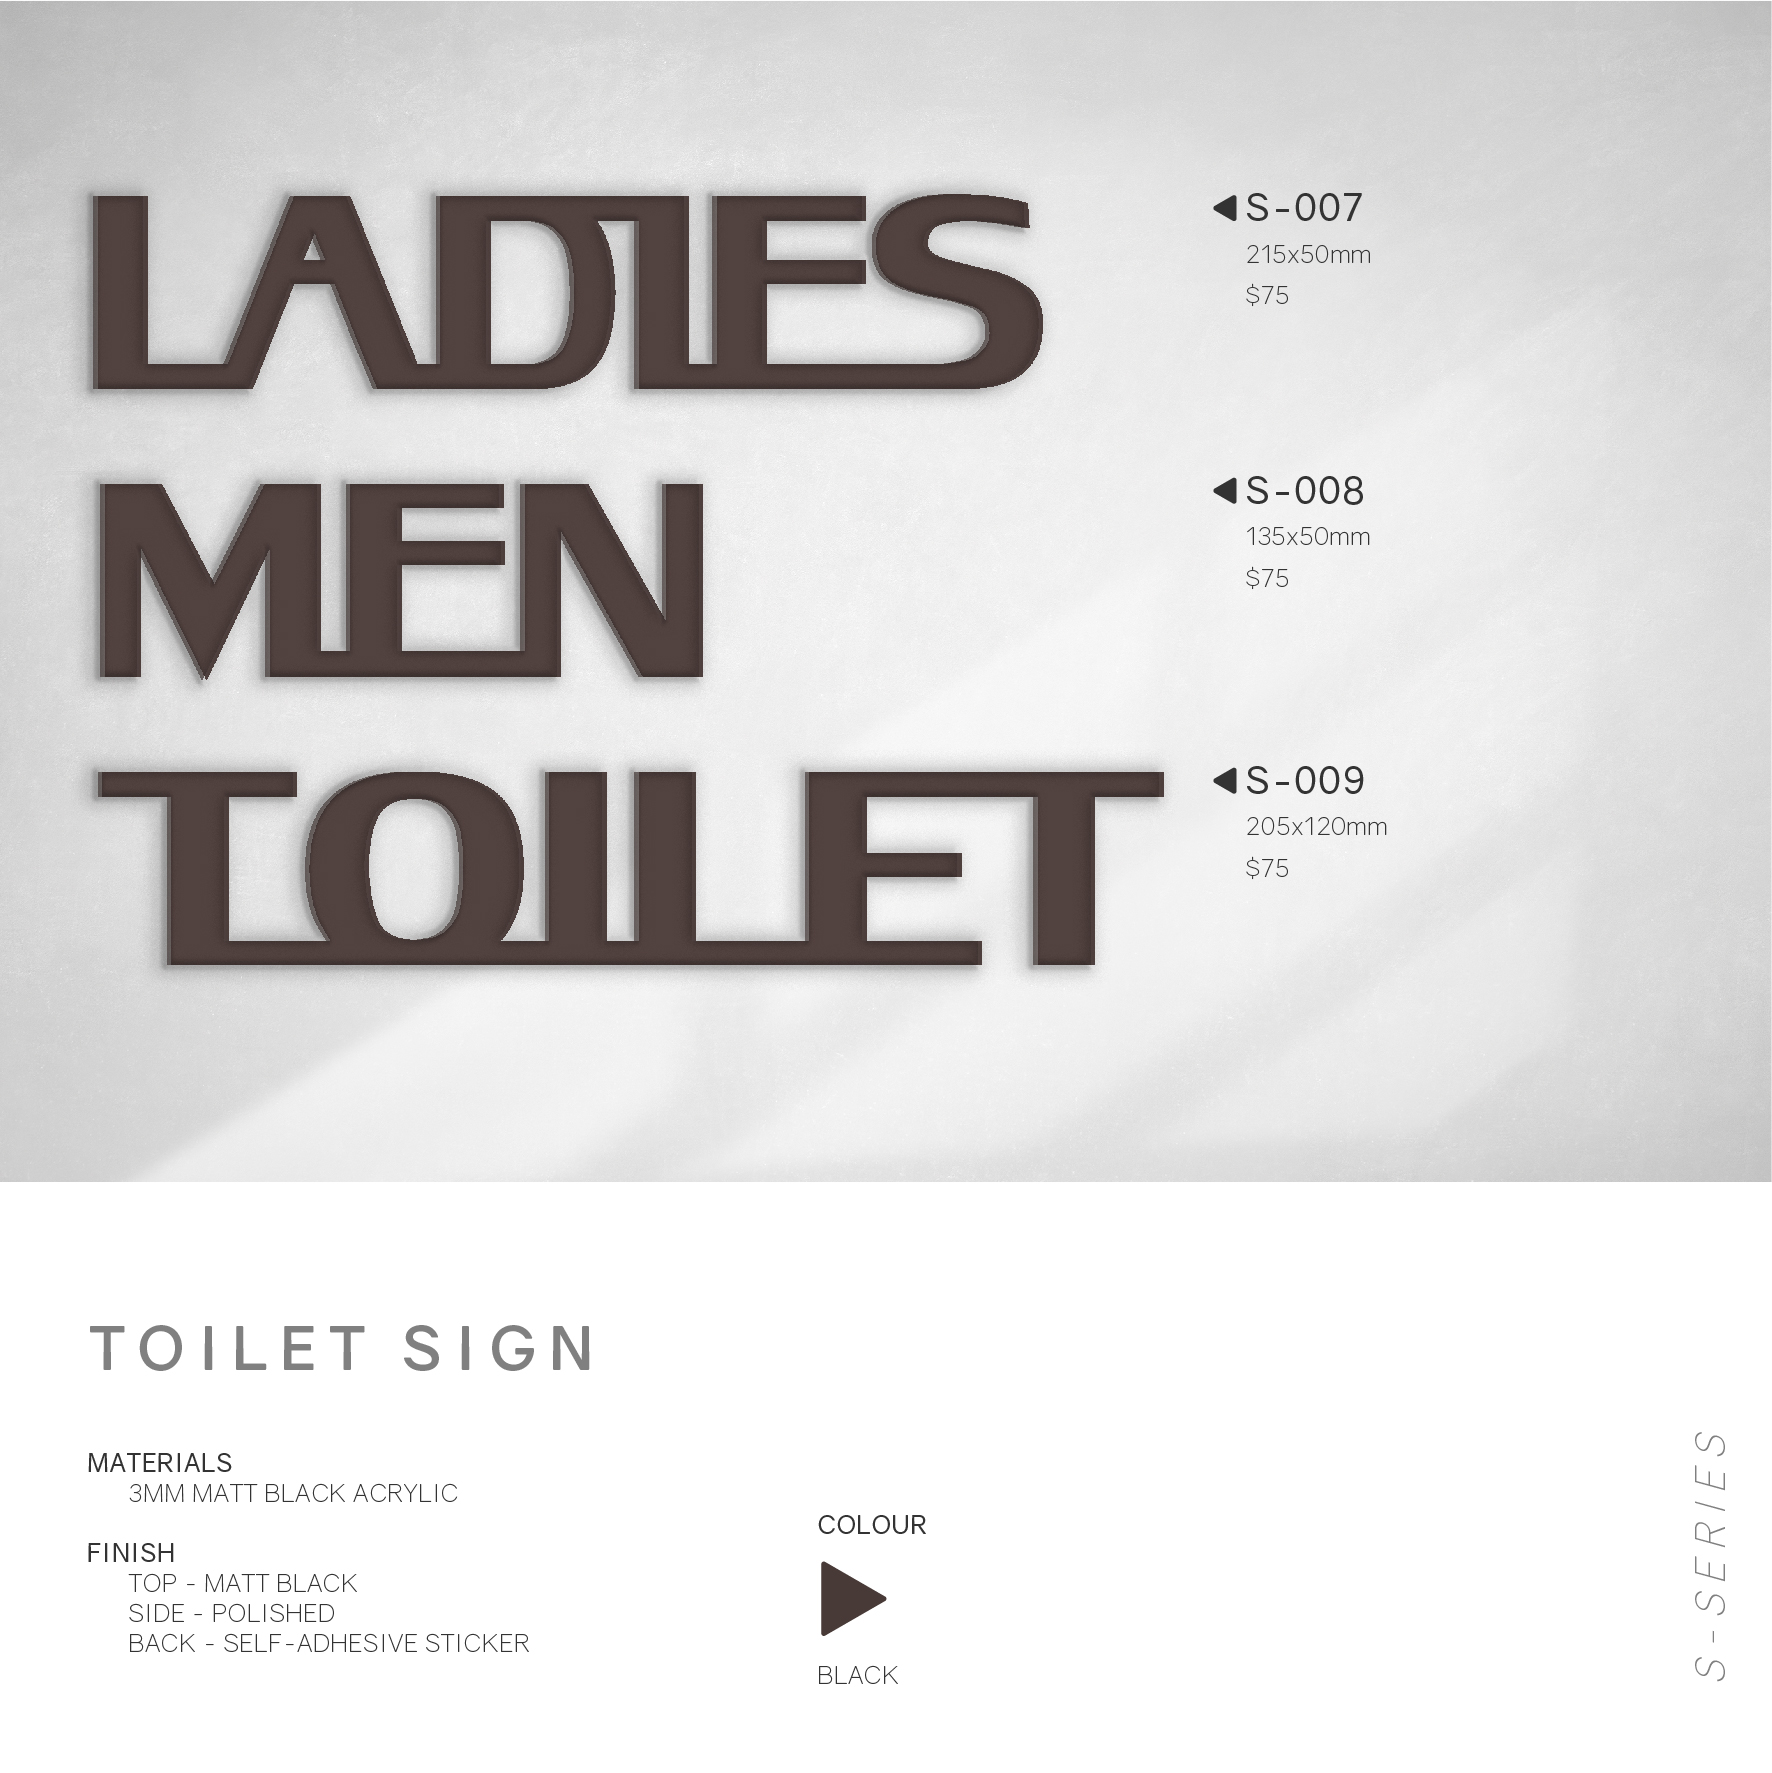 toilet sign text format